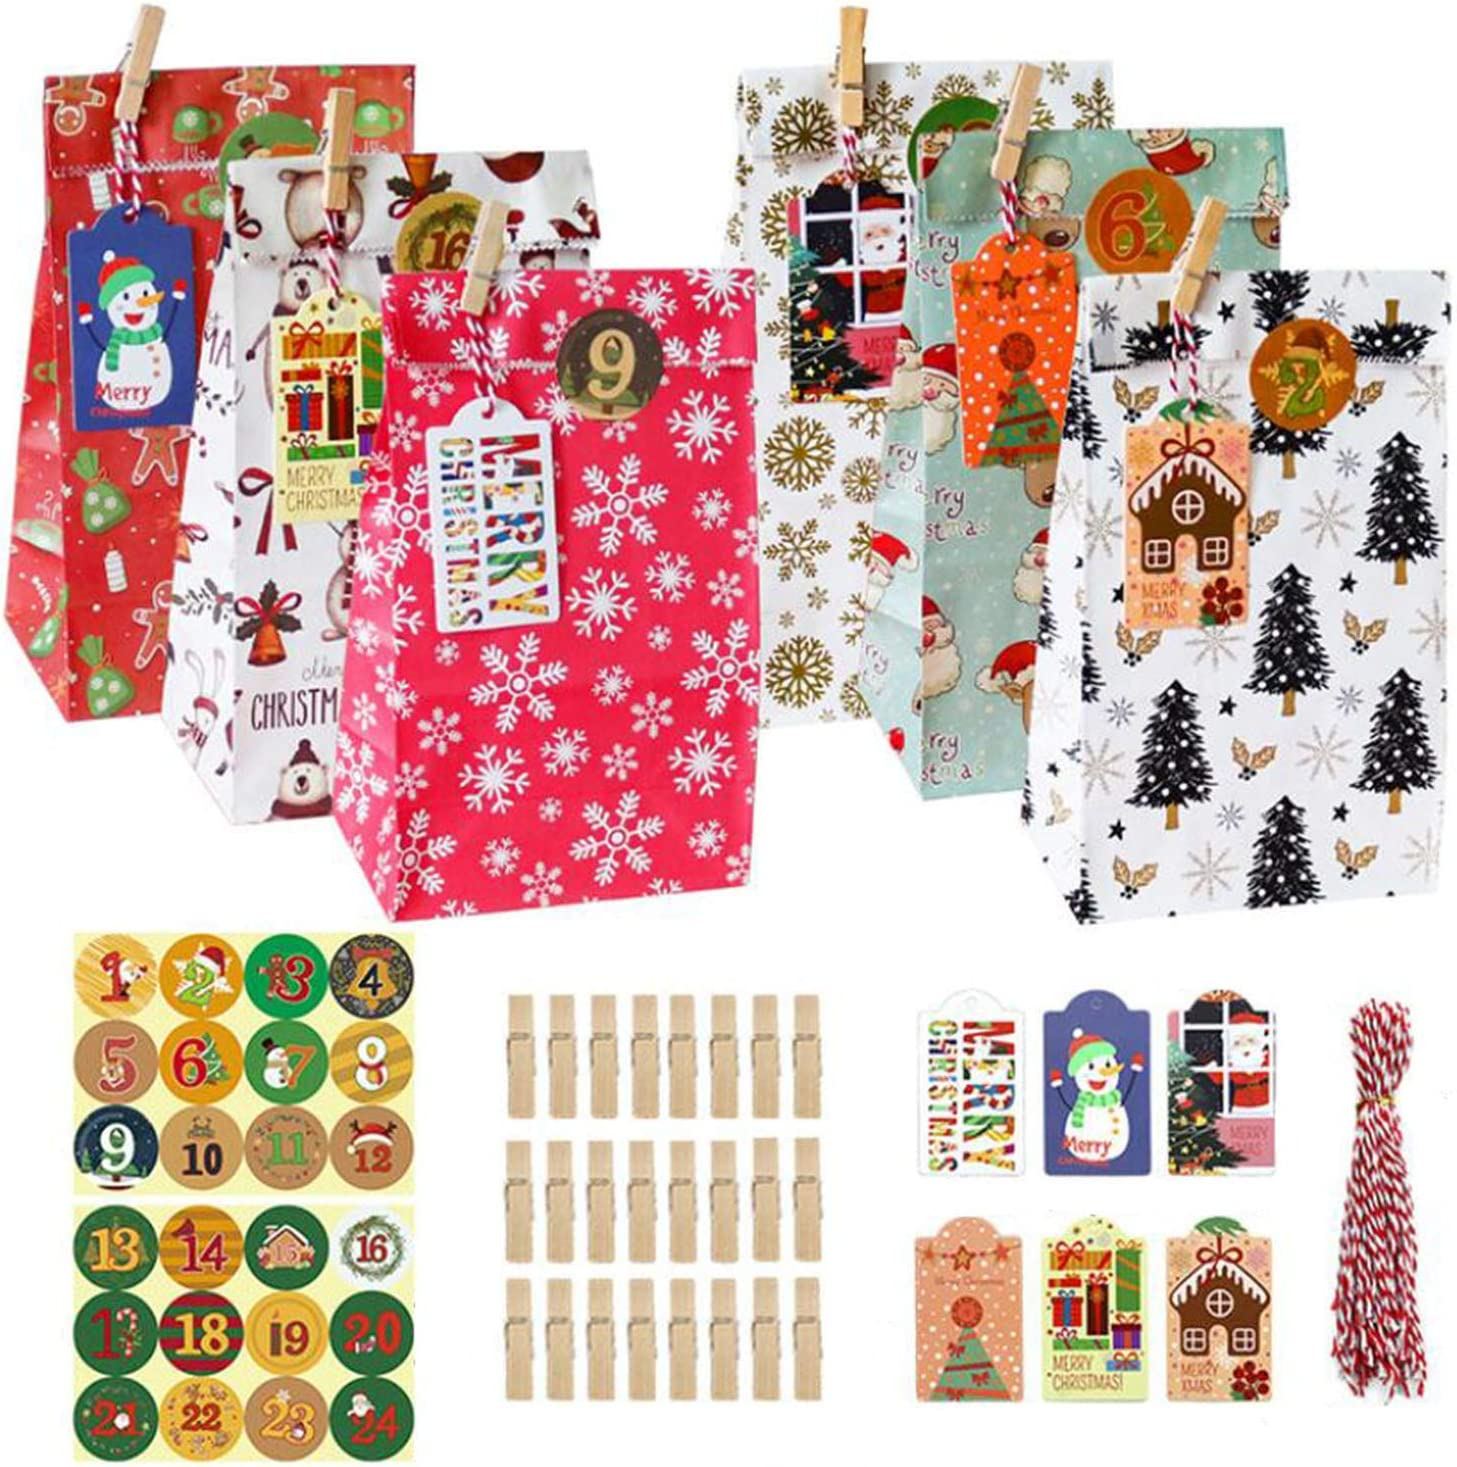 ZZIYEETTM Christmas Kraft Paper Gift Bags Xmas Stickers Set Candy Food Cookies Packing Paper Bags Gift Wrapping Bags Set (B)